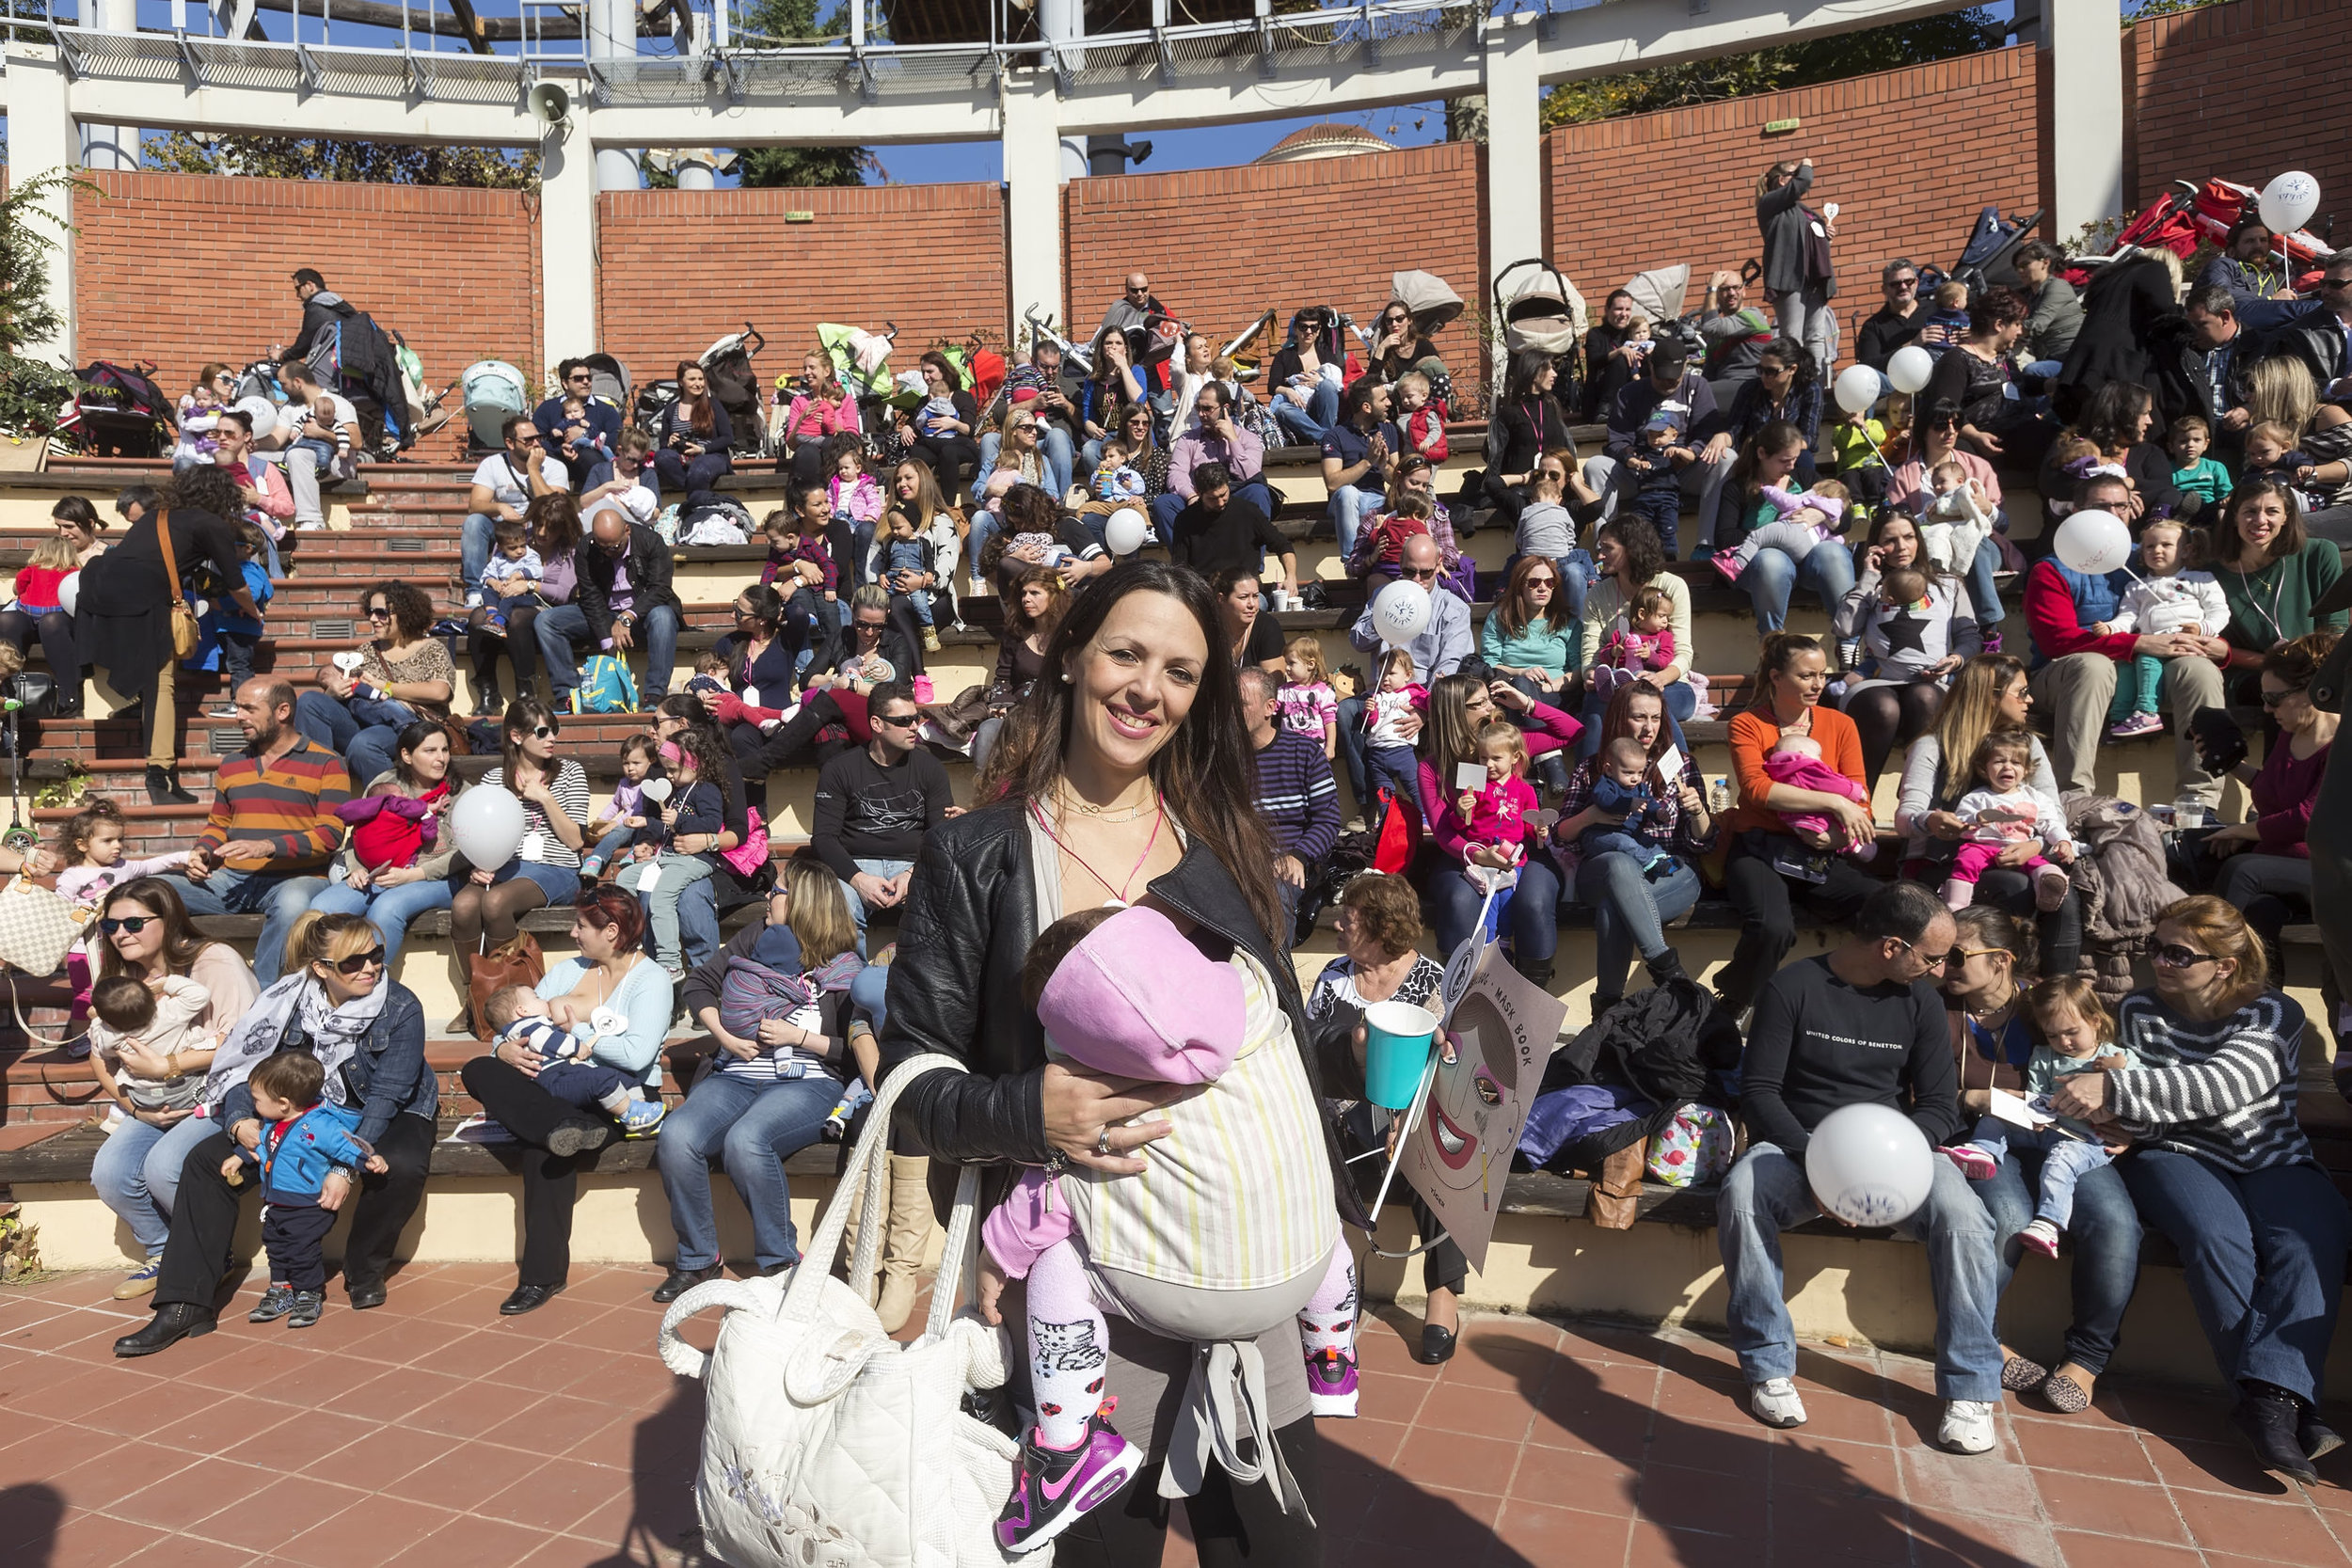 Thessaloniki, Greece, November 1 2015: Mother breastfeeding her baby on the 6th Nationwide public breastfeeding in celebration of World Breastfeeding Week.